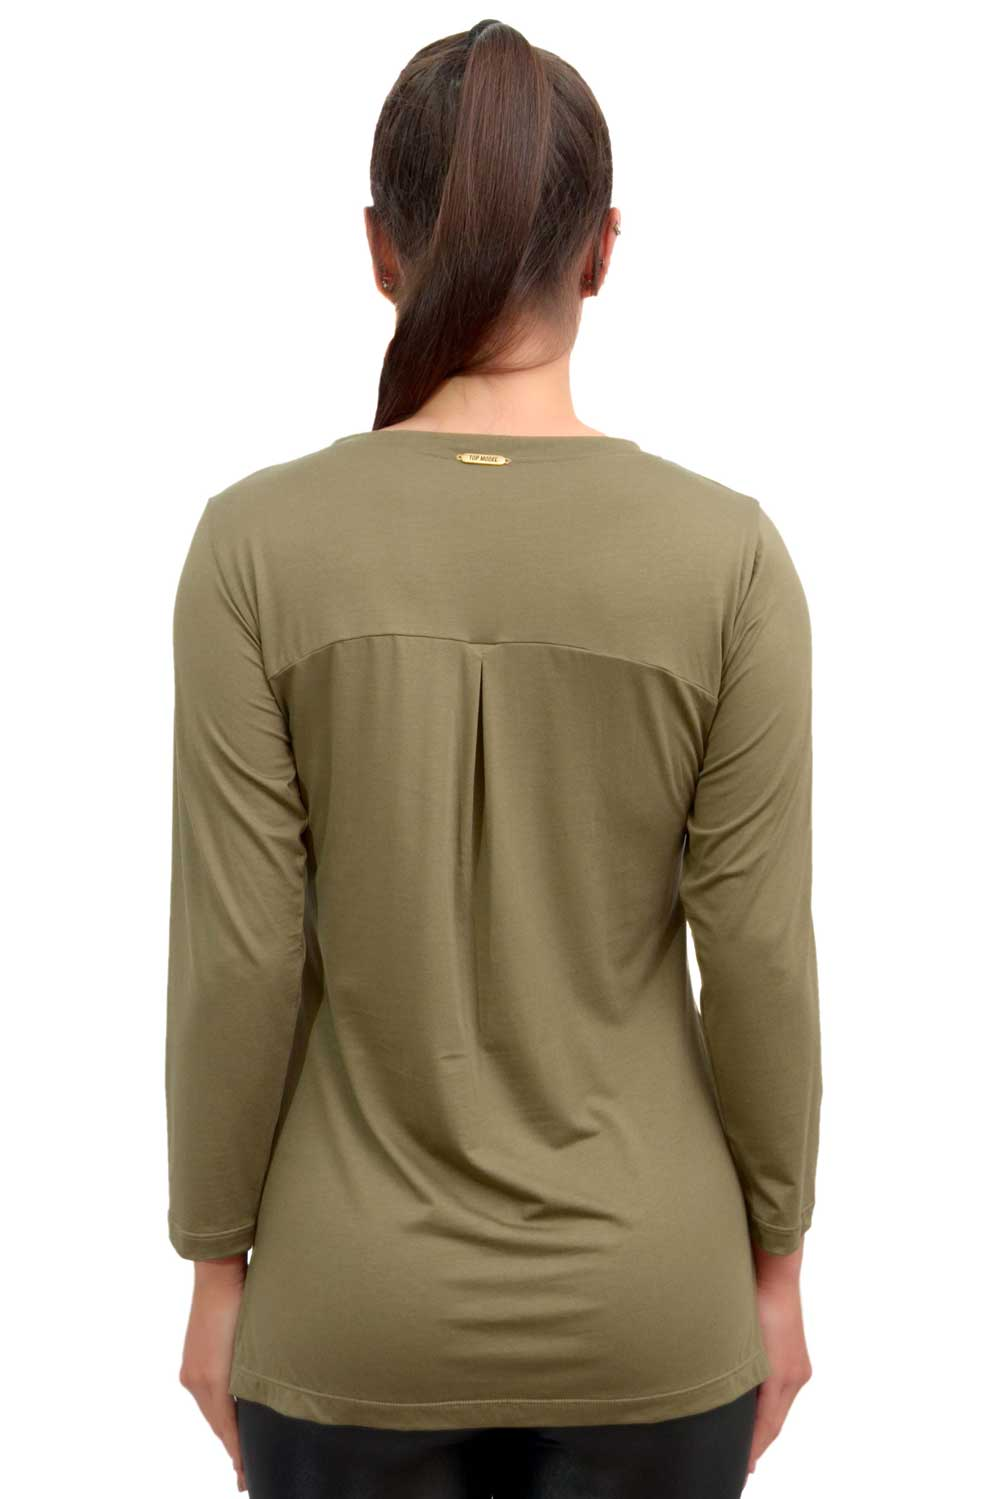 BLUSA MANGA 3/4 LU STRETCH VERDE TOP MODEL